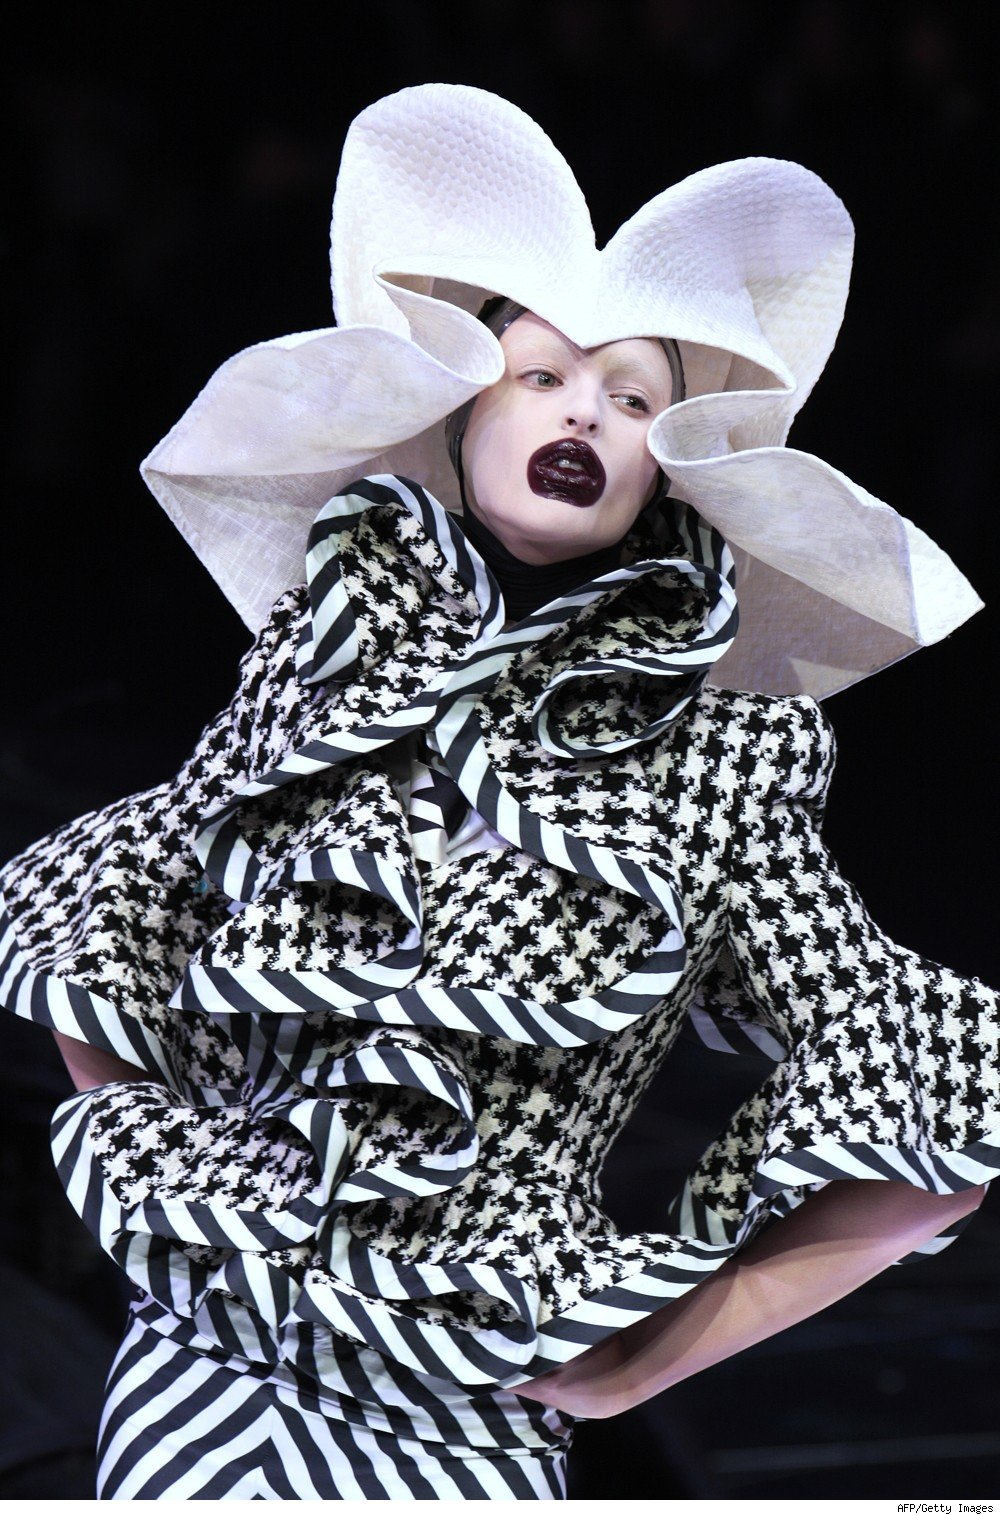 The Influence of Isabella Blow